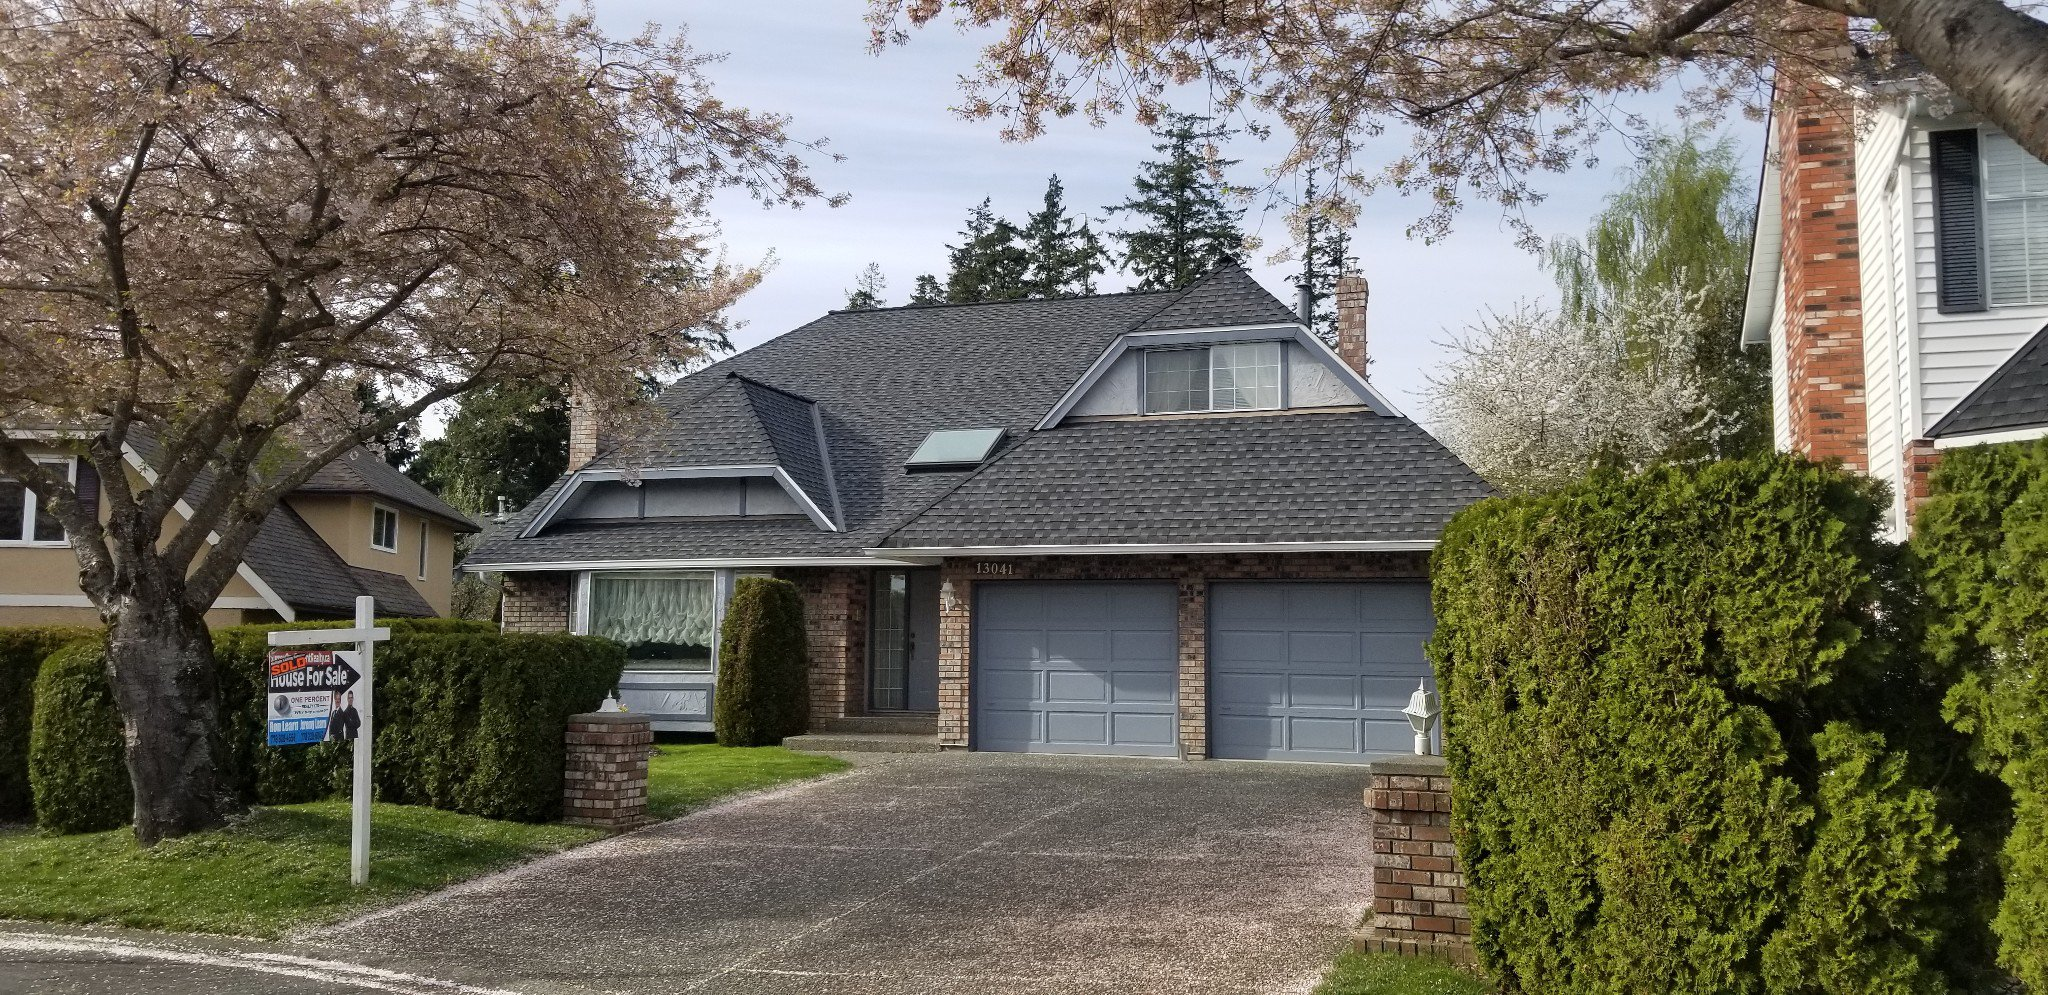 Main Photo: 13041 19a ave in Surrey: Crescent Bch Ocean Pk. House for sale (South Surrey White Rock)  : MLS®# R2346425